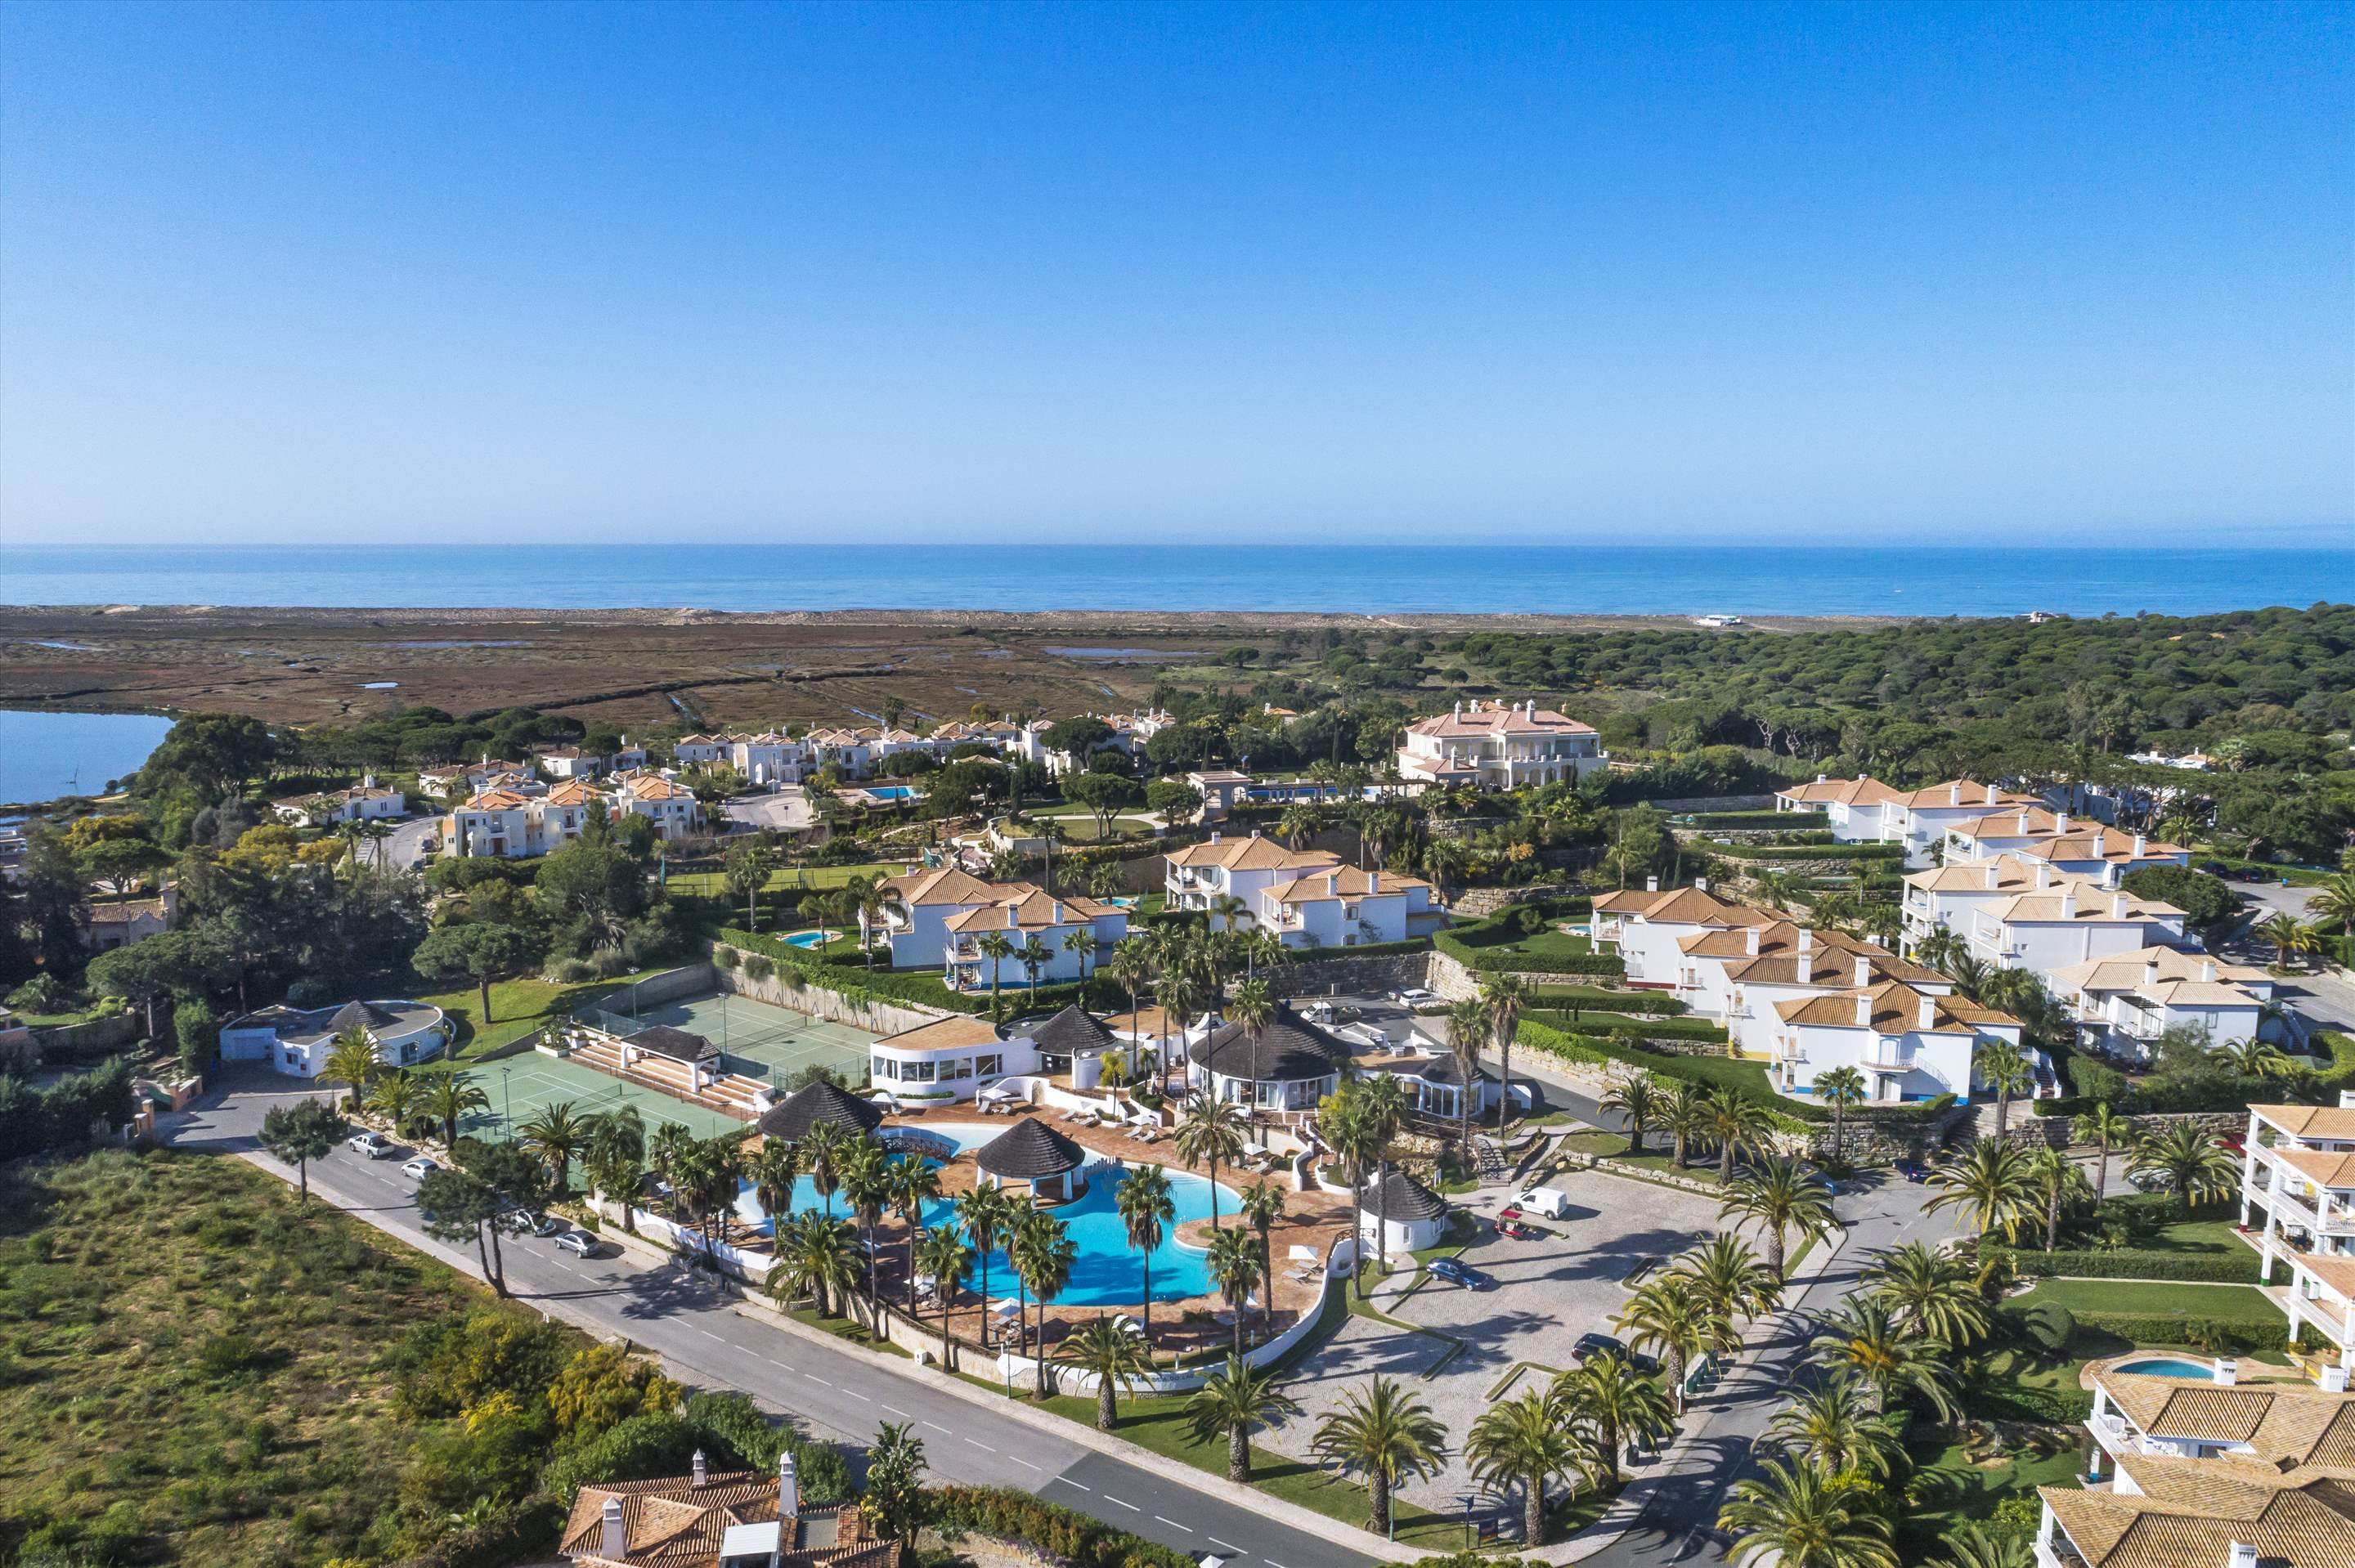 Encosta do Lago 2 Bedroom Apt, Private Pool, 2 bedroom apartment in Encosta do Lago Resort, Algarve Photo #29